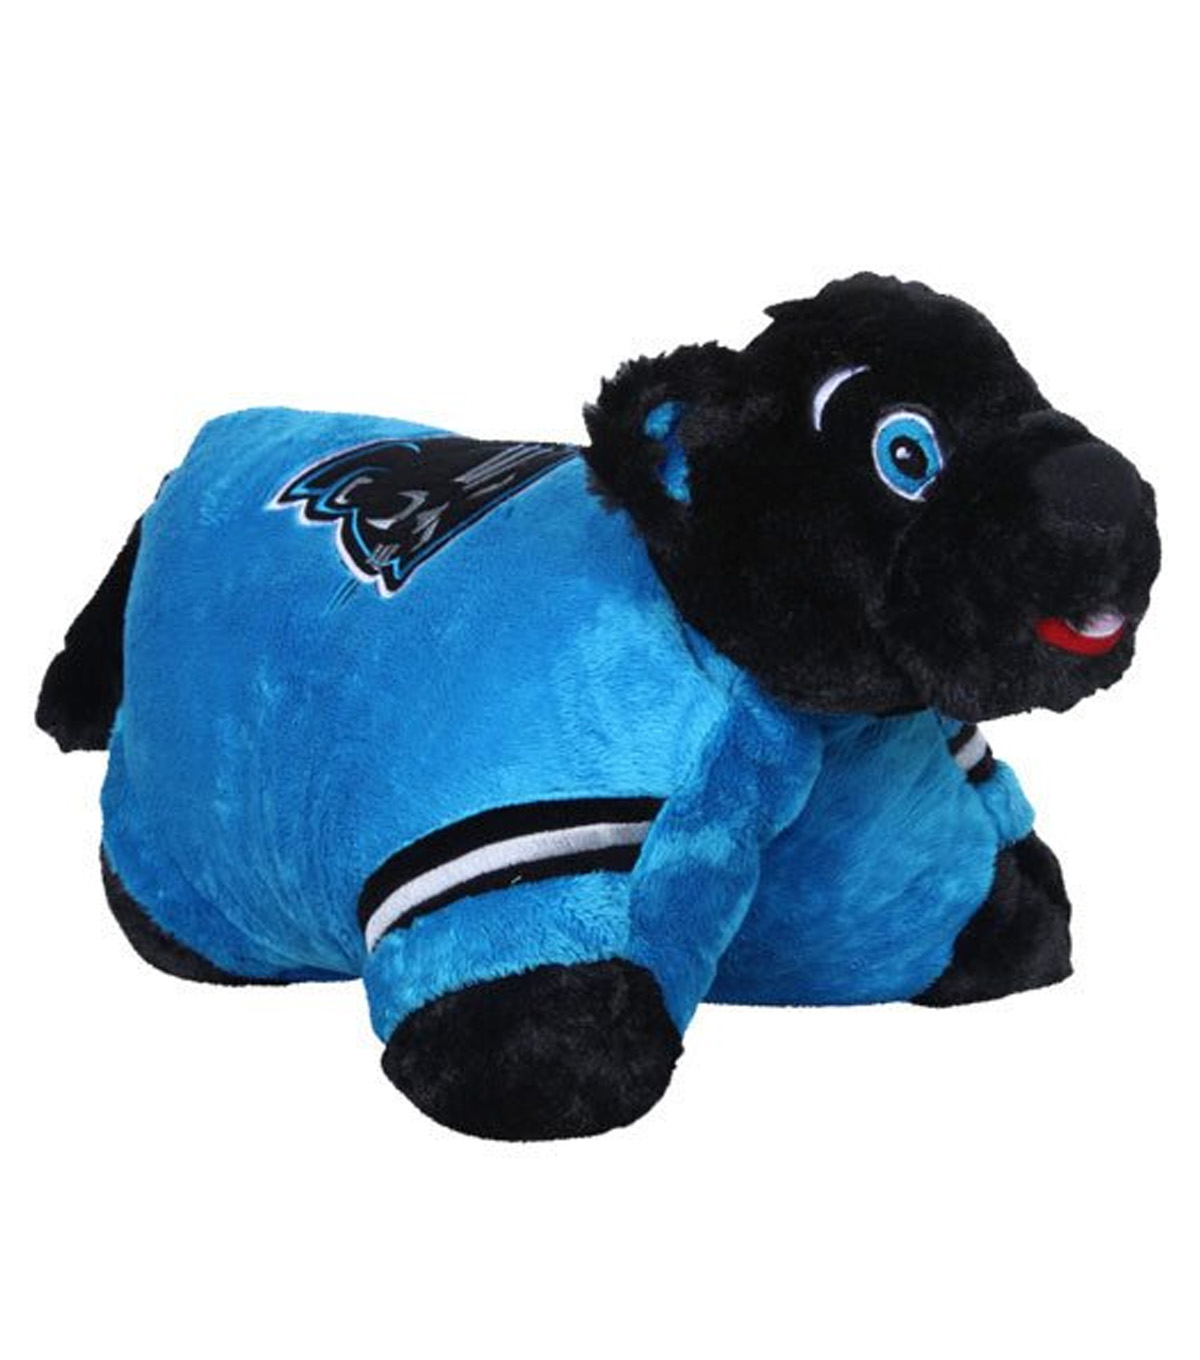 Nfl Panthers Pillowpet